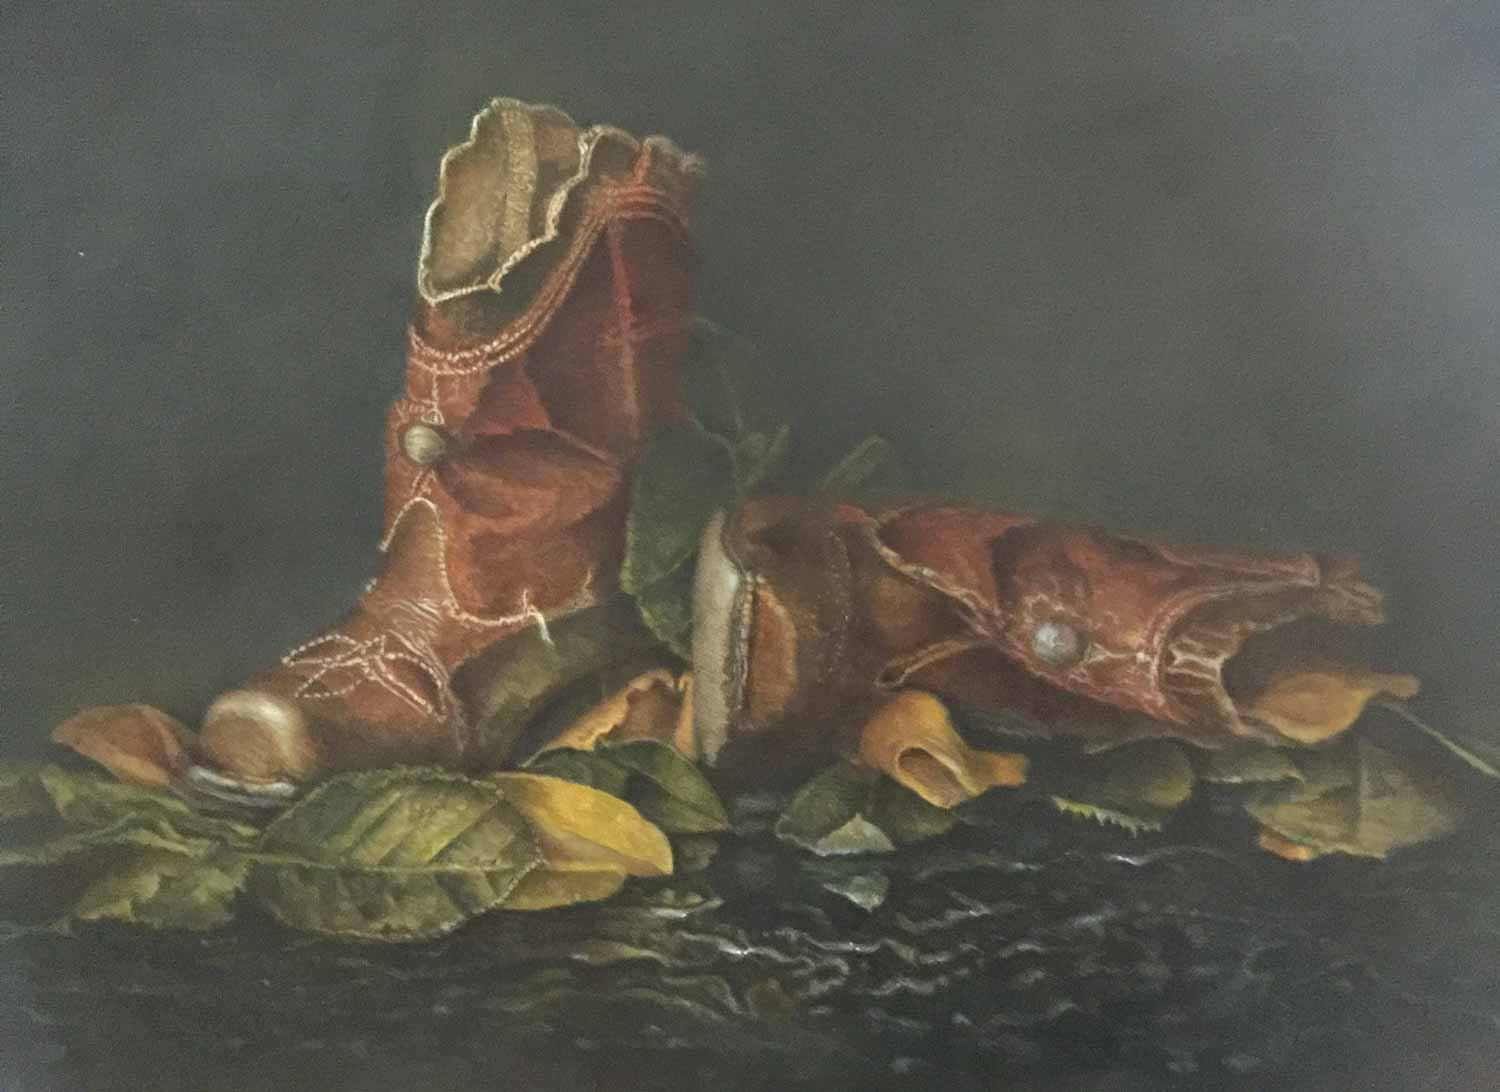 Duke's Boots: Acrylic on board